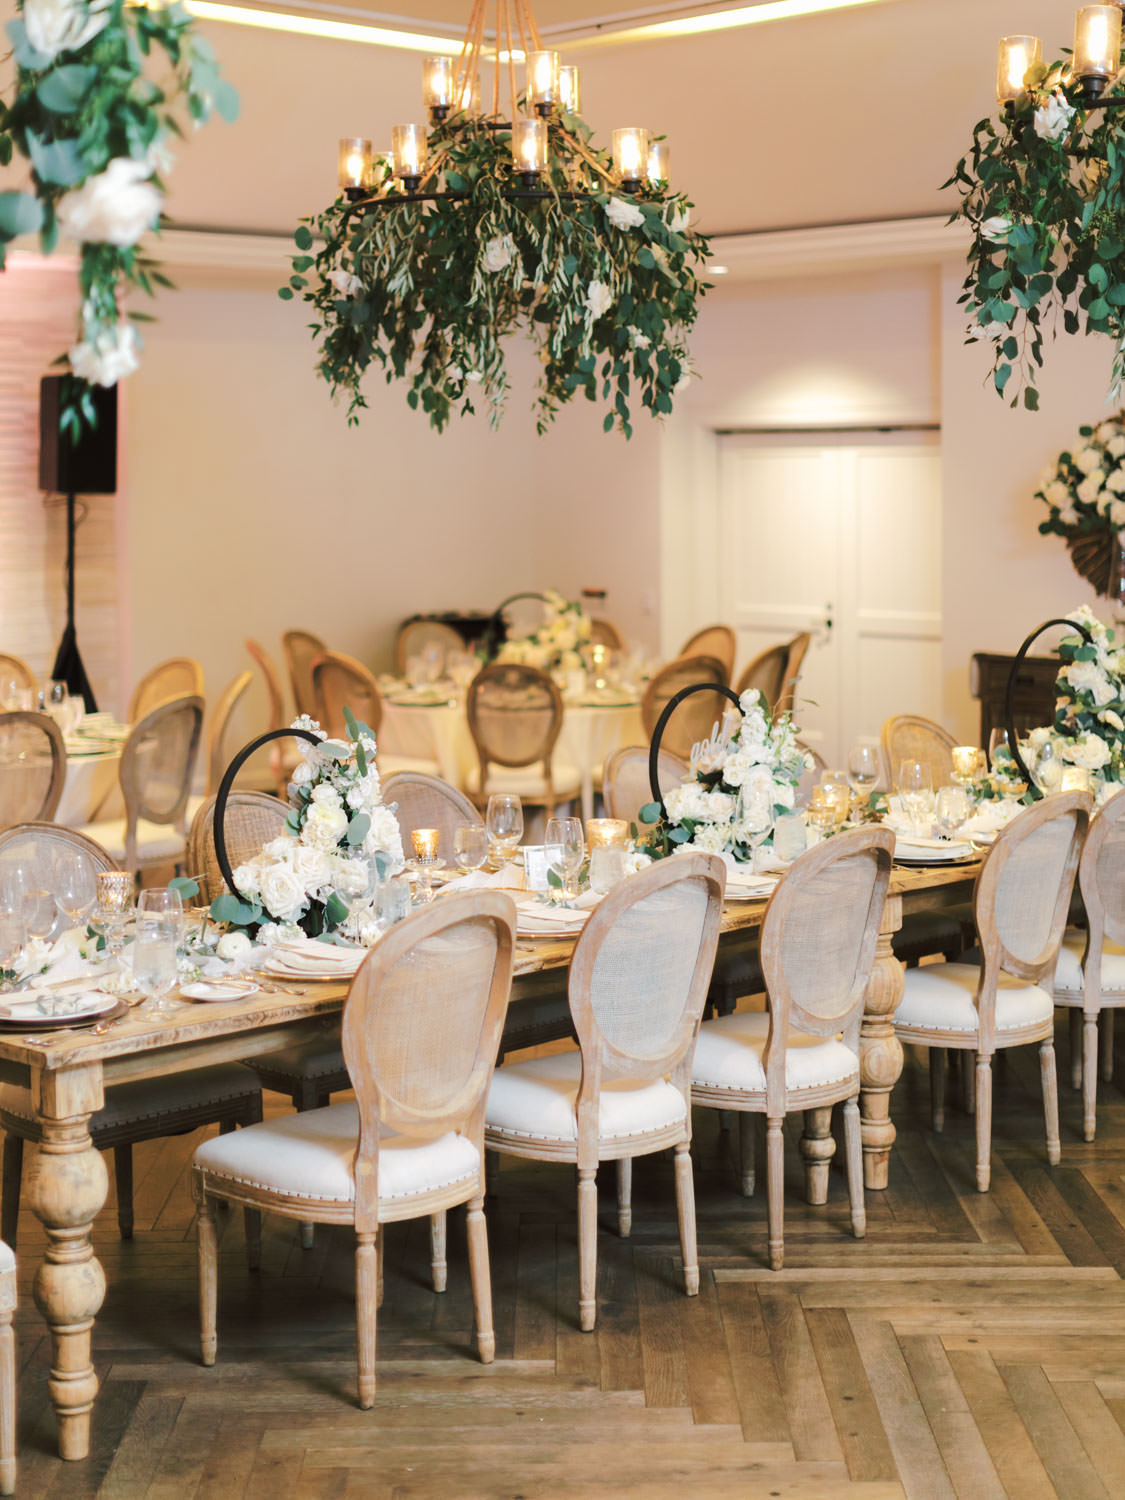 Cane back Oak Louis chairs surrounding a long natural wood farm table topped with green and ivory centerpieces built around a black metal hoop. Chandeliers with hanging greenery and roses. Estancia La Jolla Grande Room reception by Cavin Elizabeth Photography